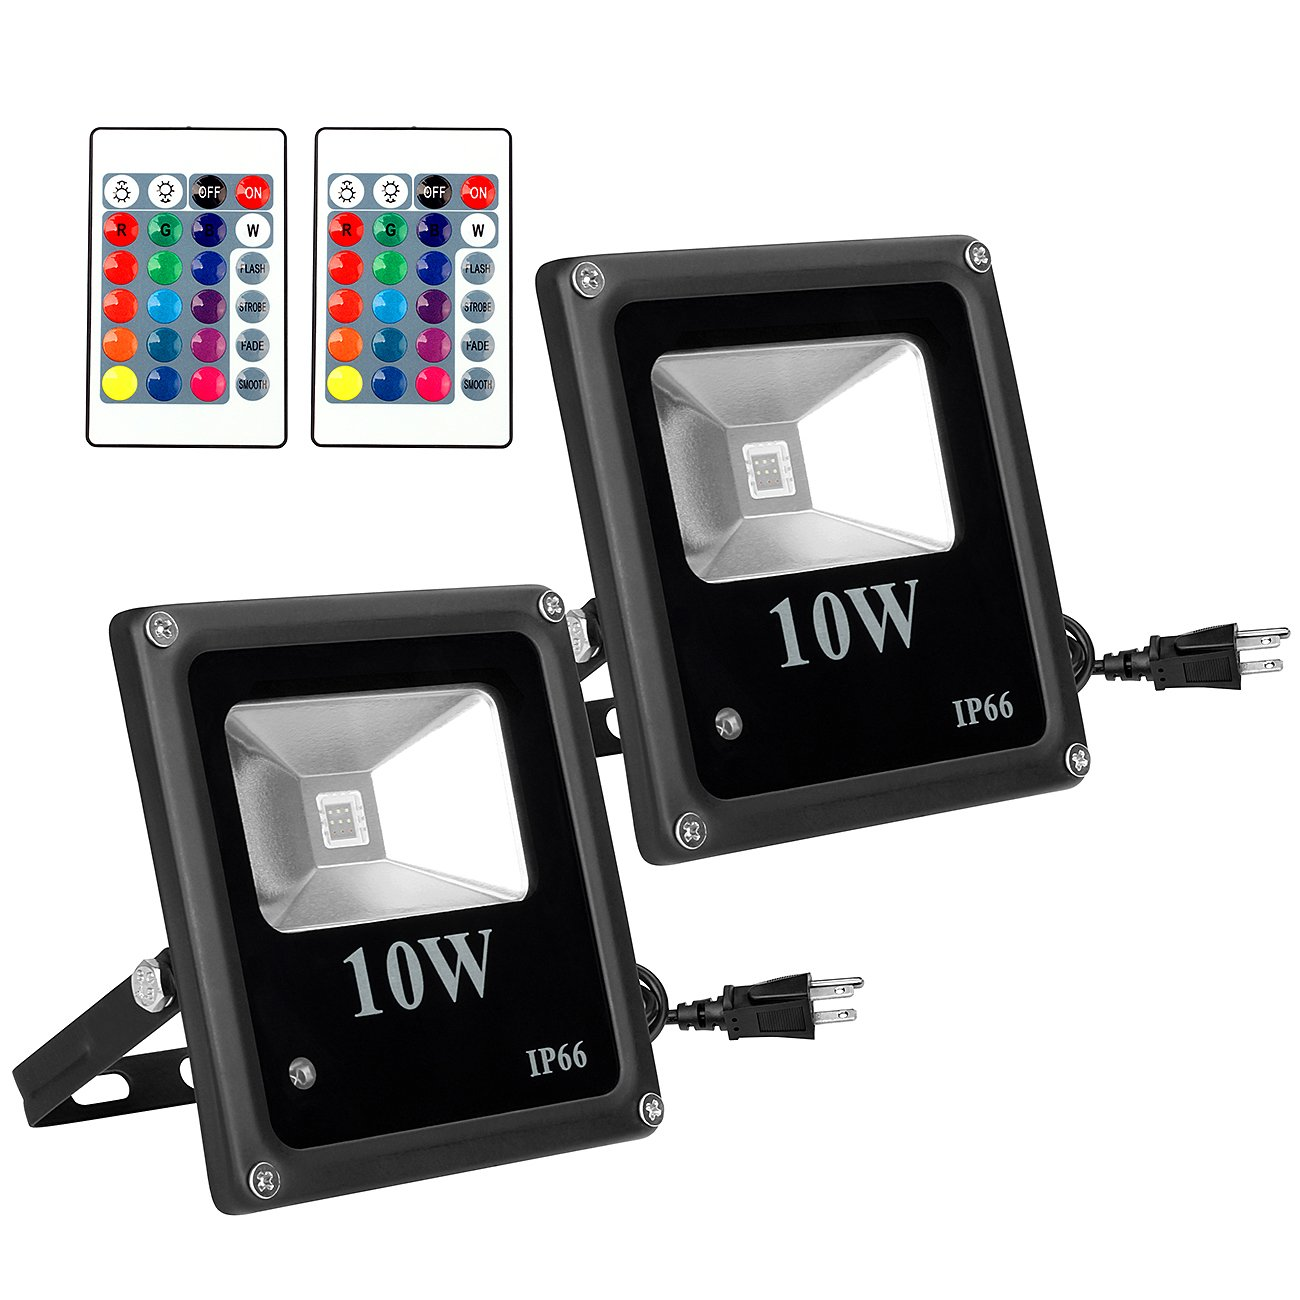 10W RGB LED Flood Lights, SHINE HAI IP66 Waterproof Outdoor Color Changing LED Security Light, 16 Colors 4 Modes with Remote Control, Wall Washer Lighting Stage Light with US 3-Plug, 2-Pack